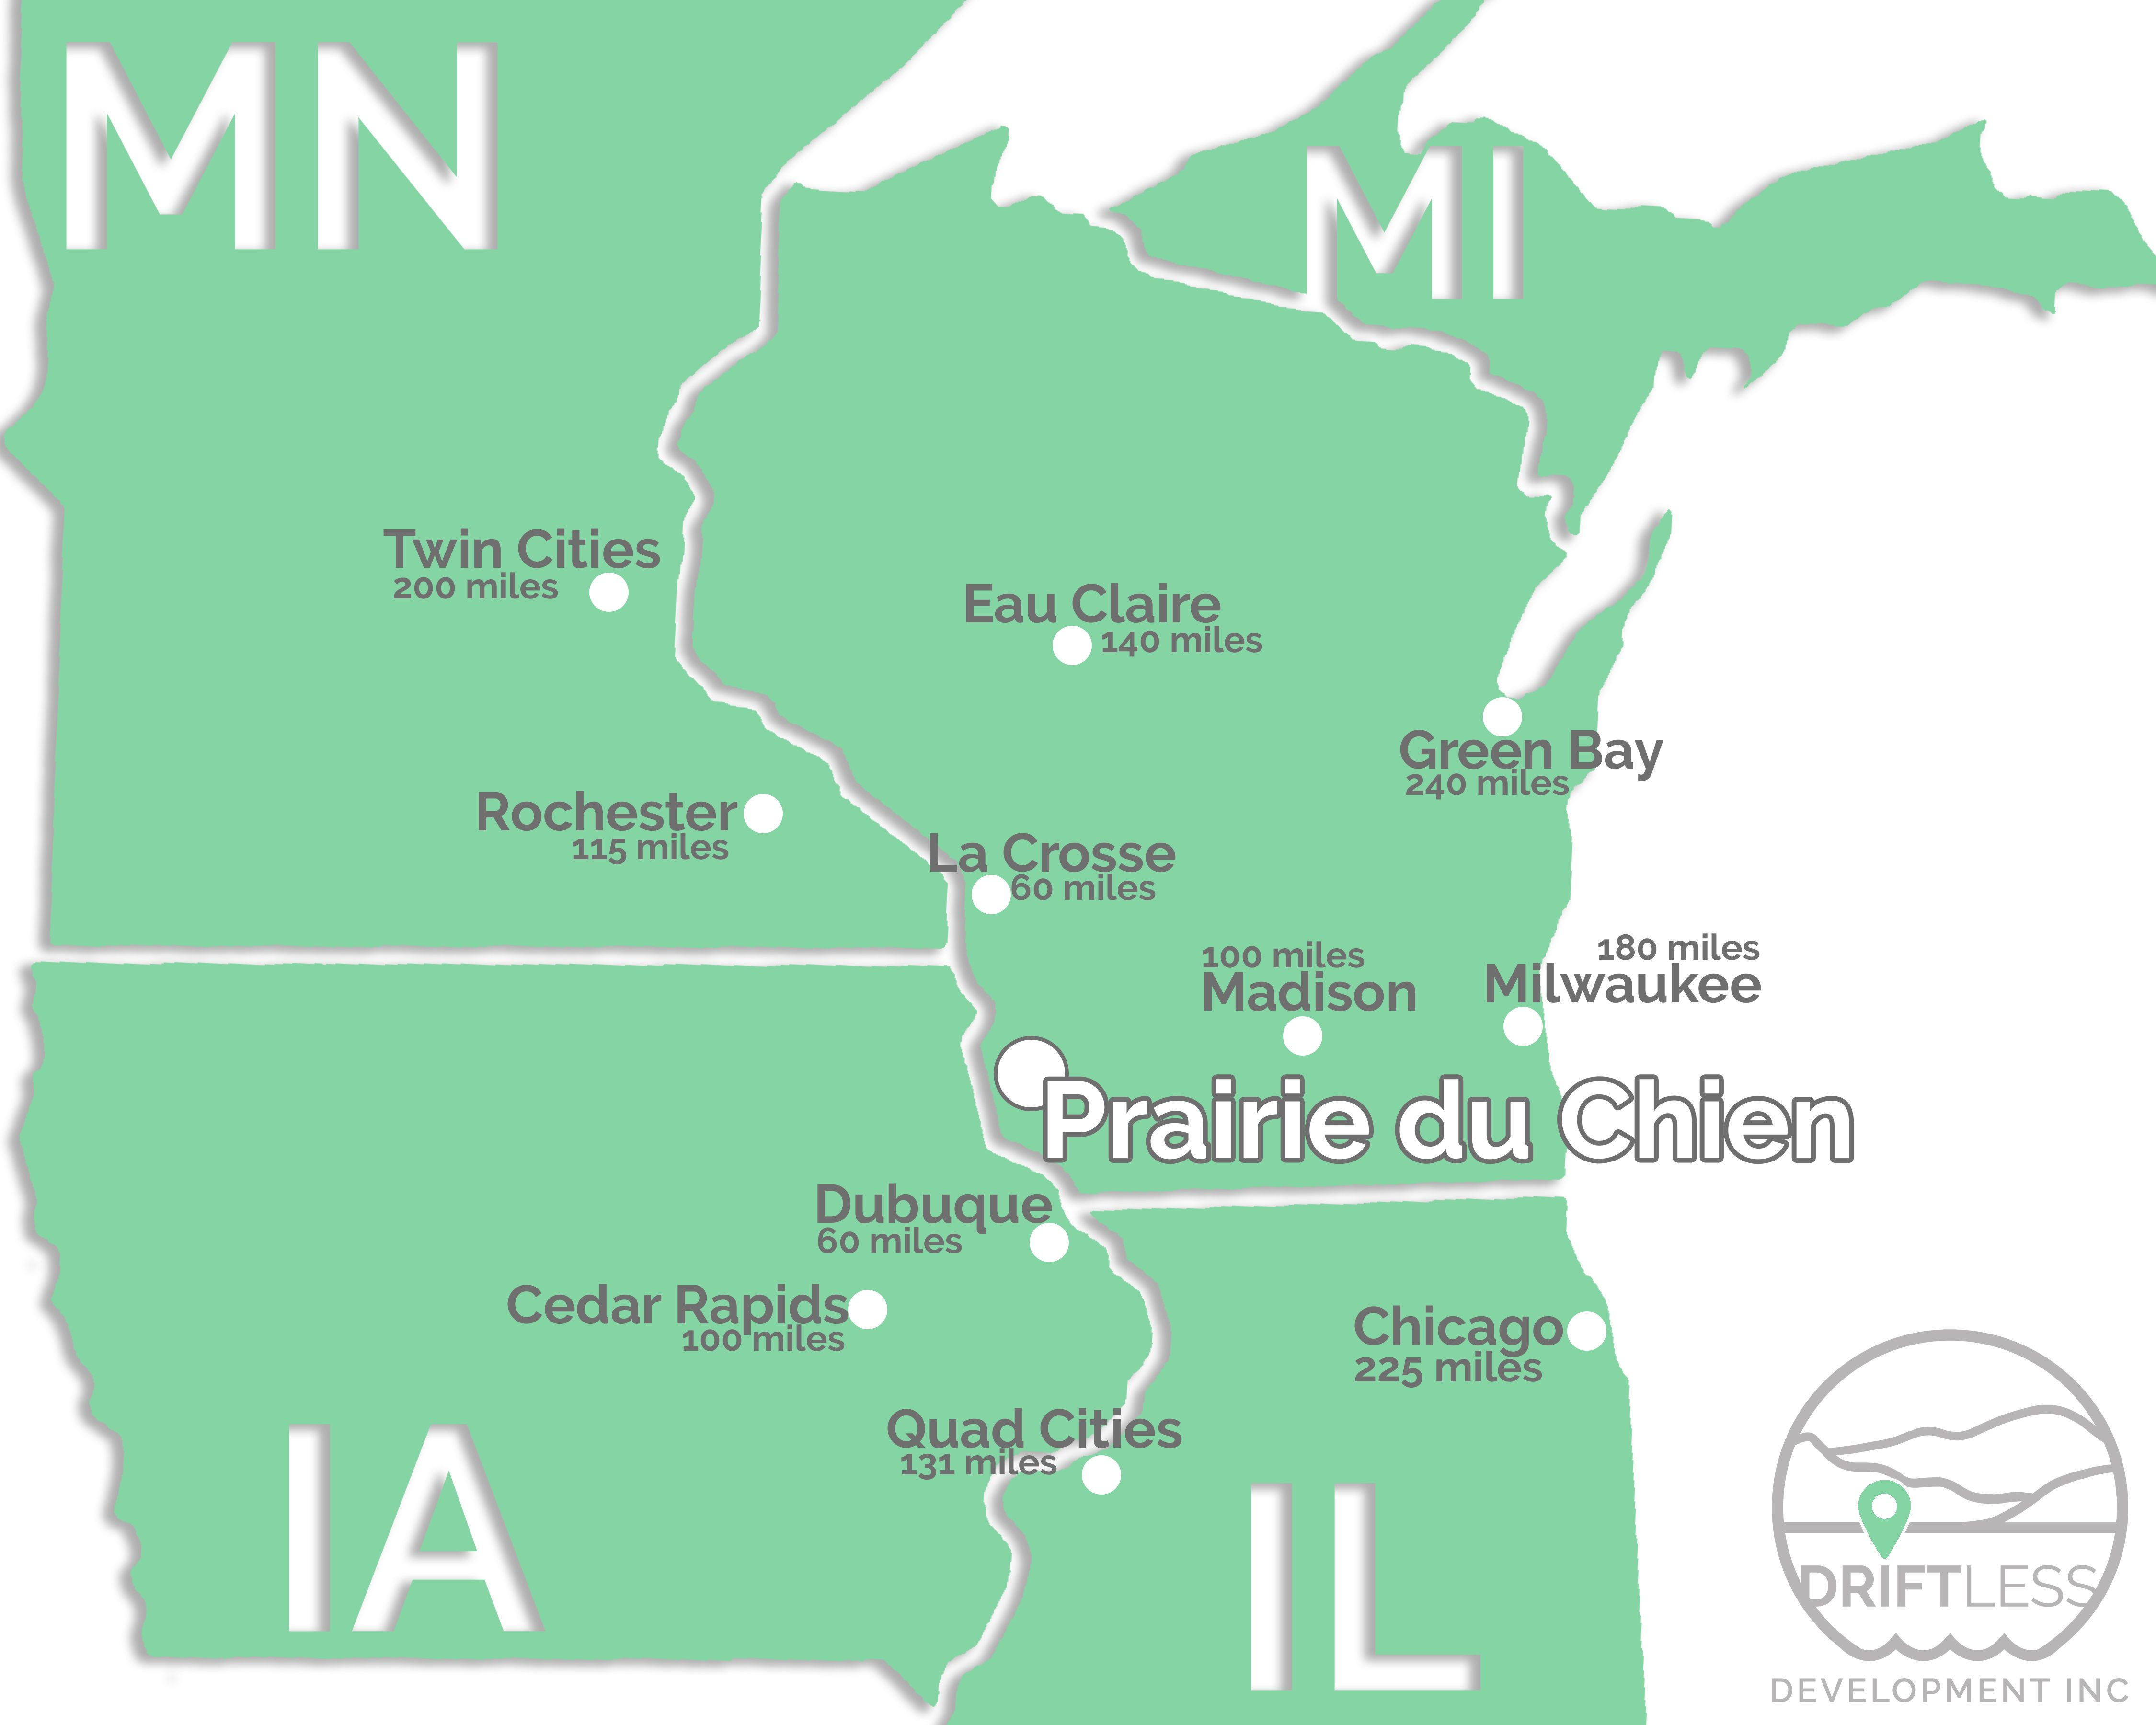 city distance to PDC / driftless region